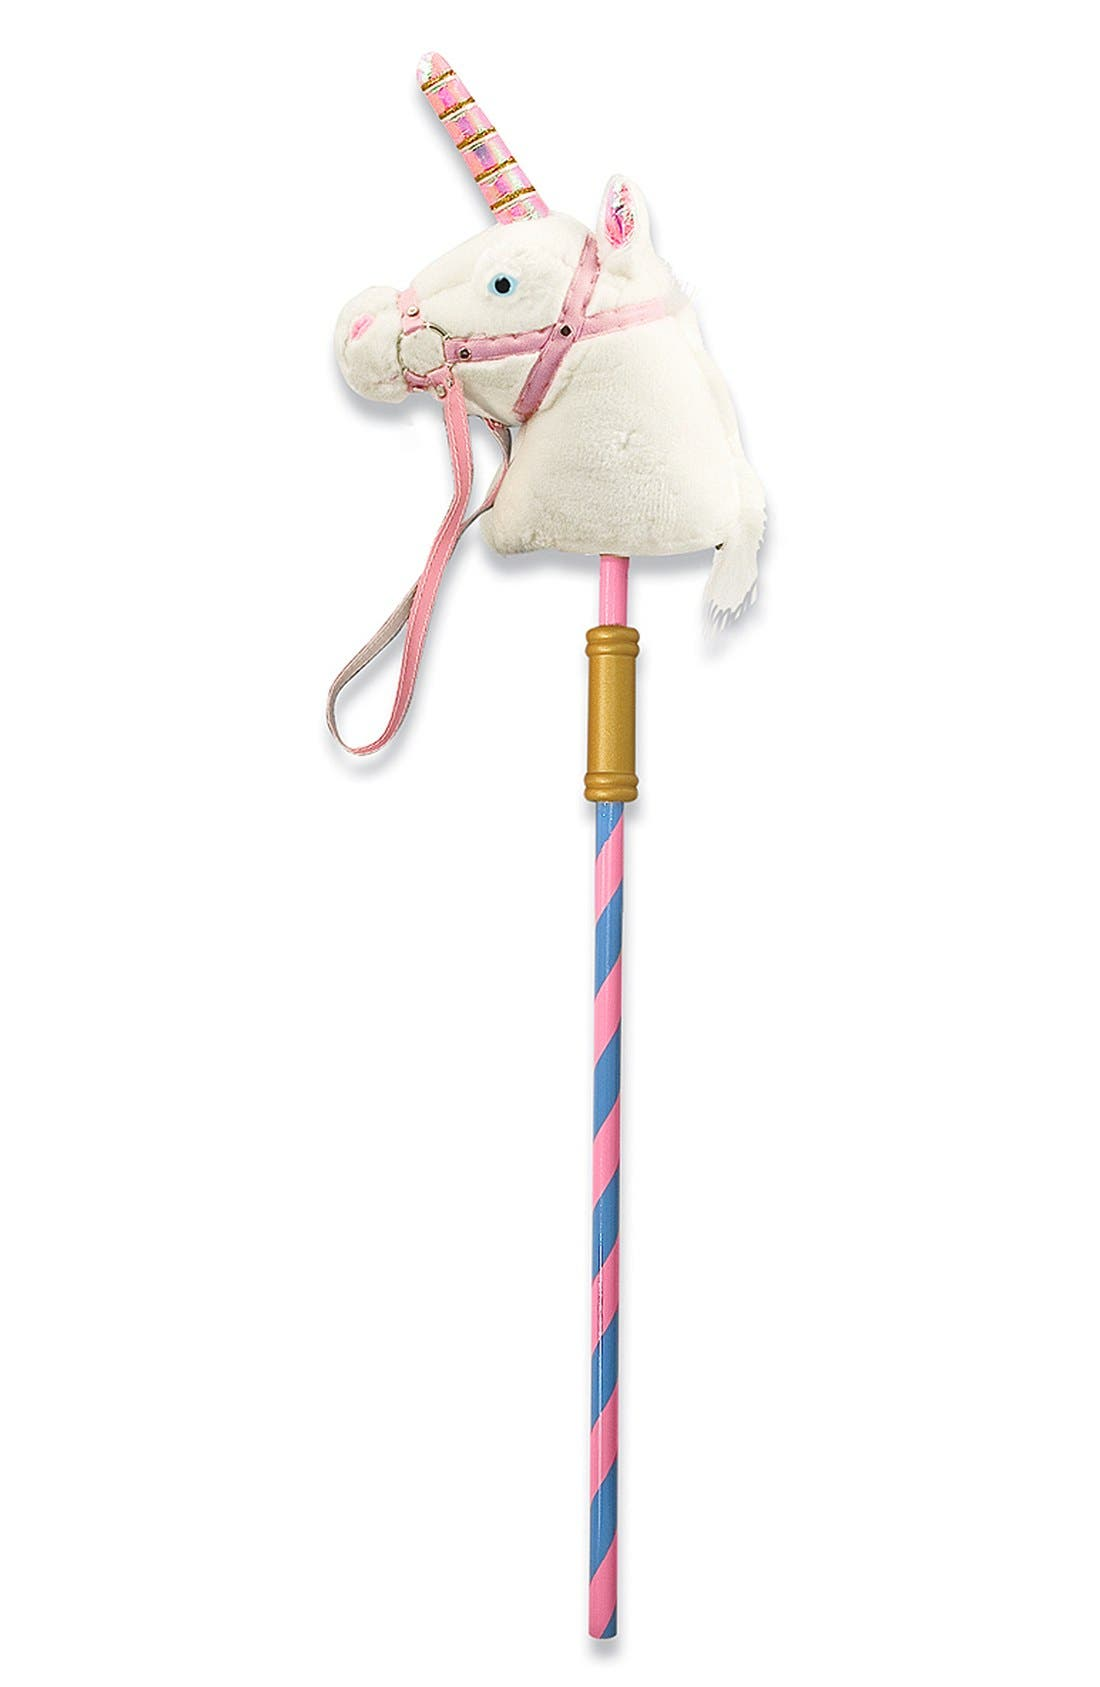 Melissa & Doug 'Prance-n-Play' Stick Unicorn